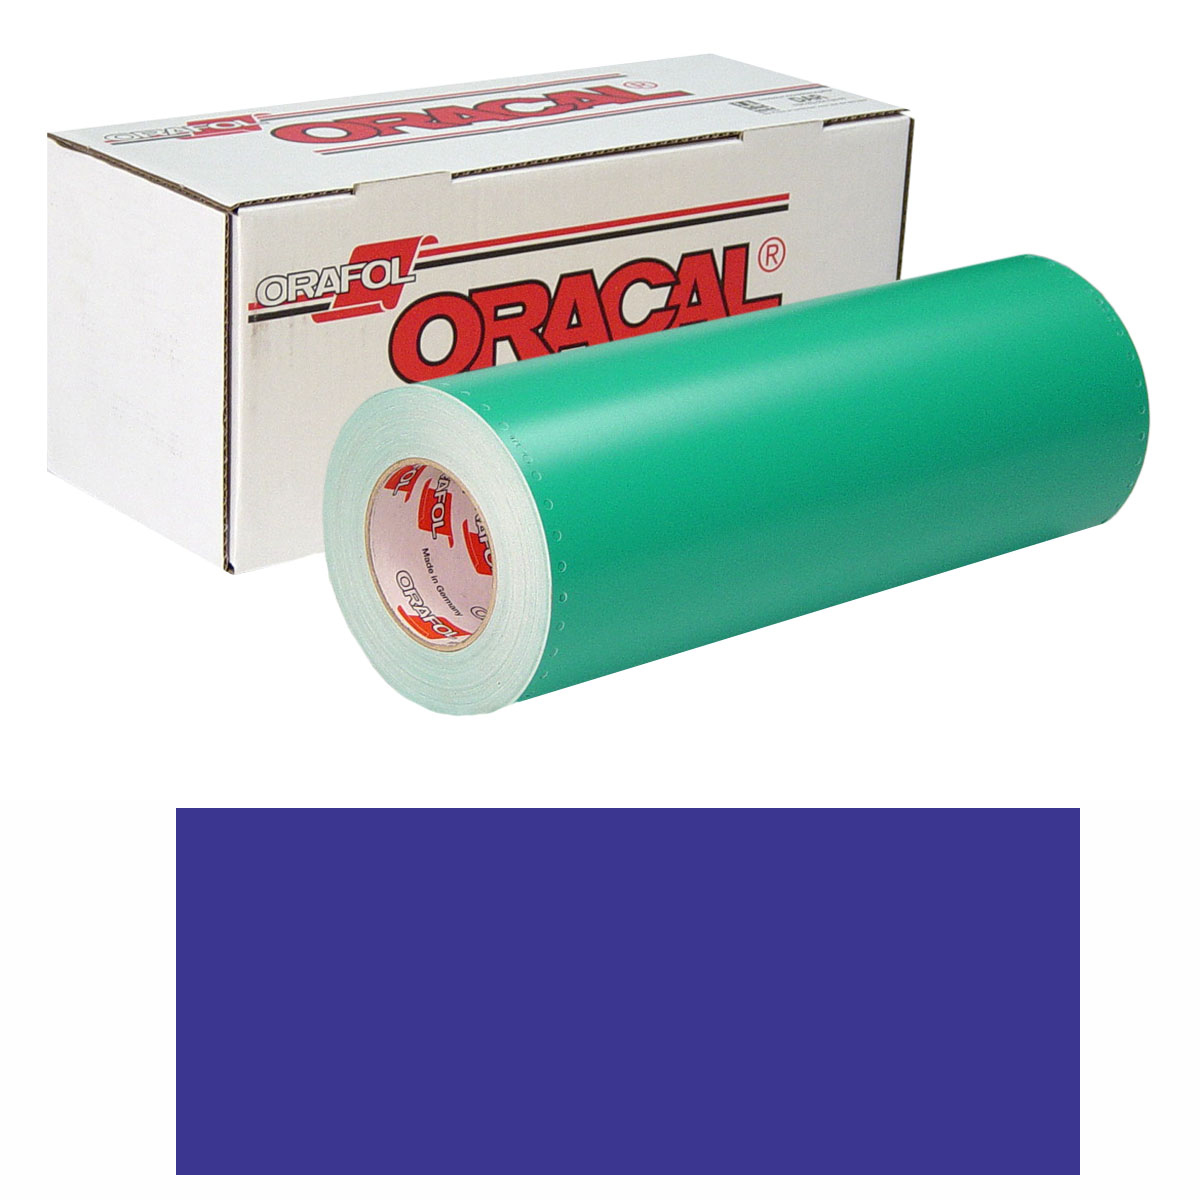 ORACAL 8500 15In X 10Yd 049 King Blue